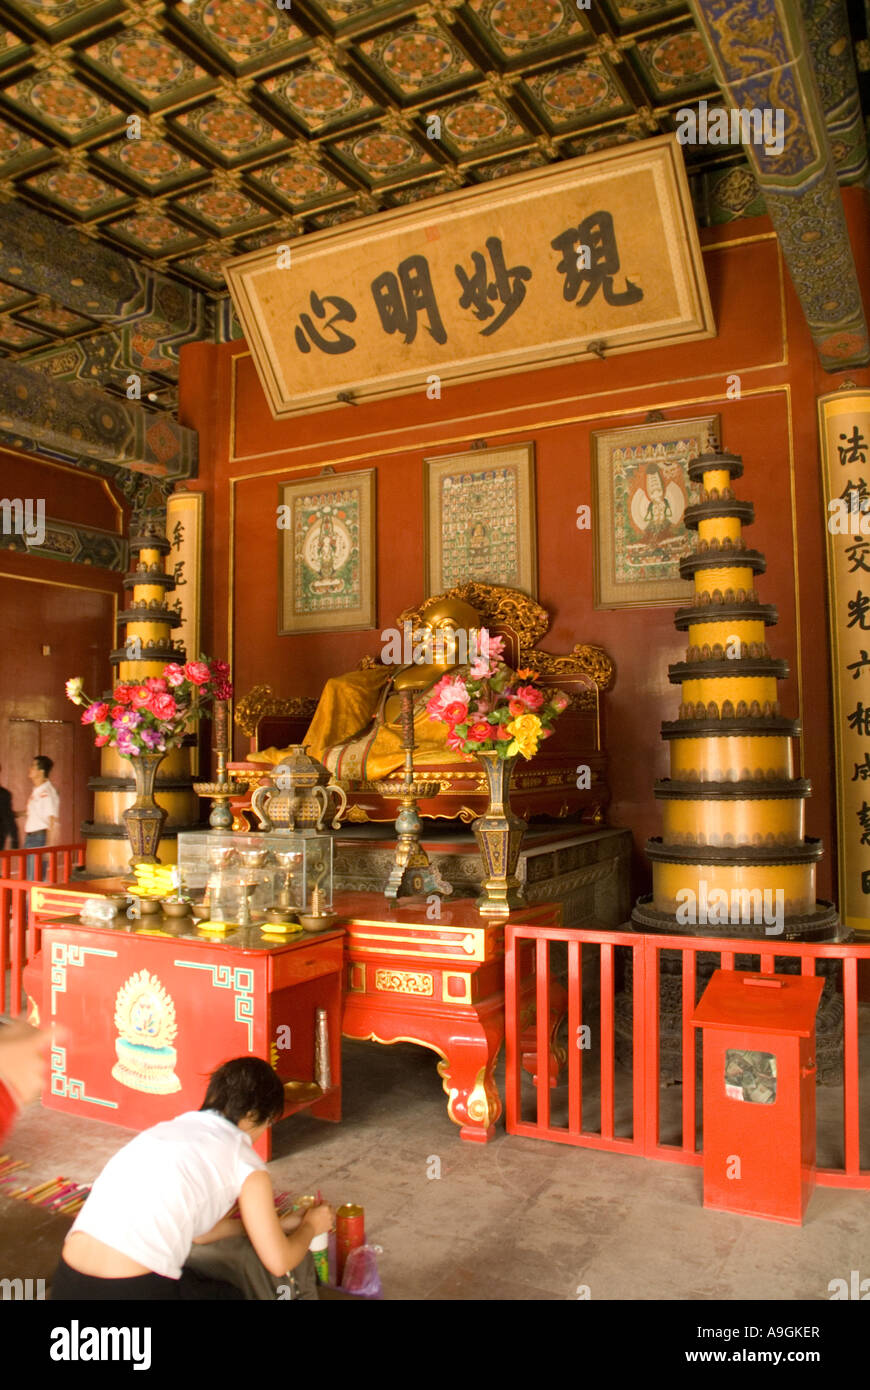 The Lama Temple (Yonghe Gong) interior of a hall with worshipper - Stock Image